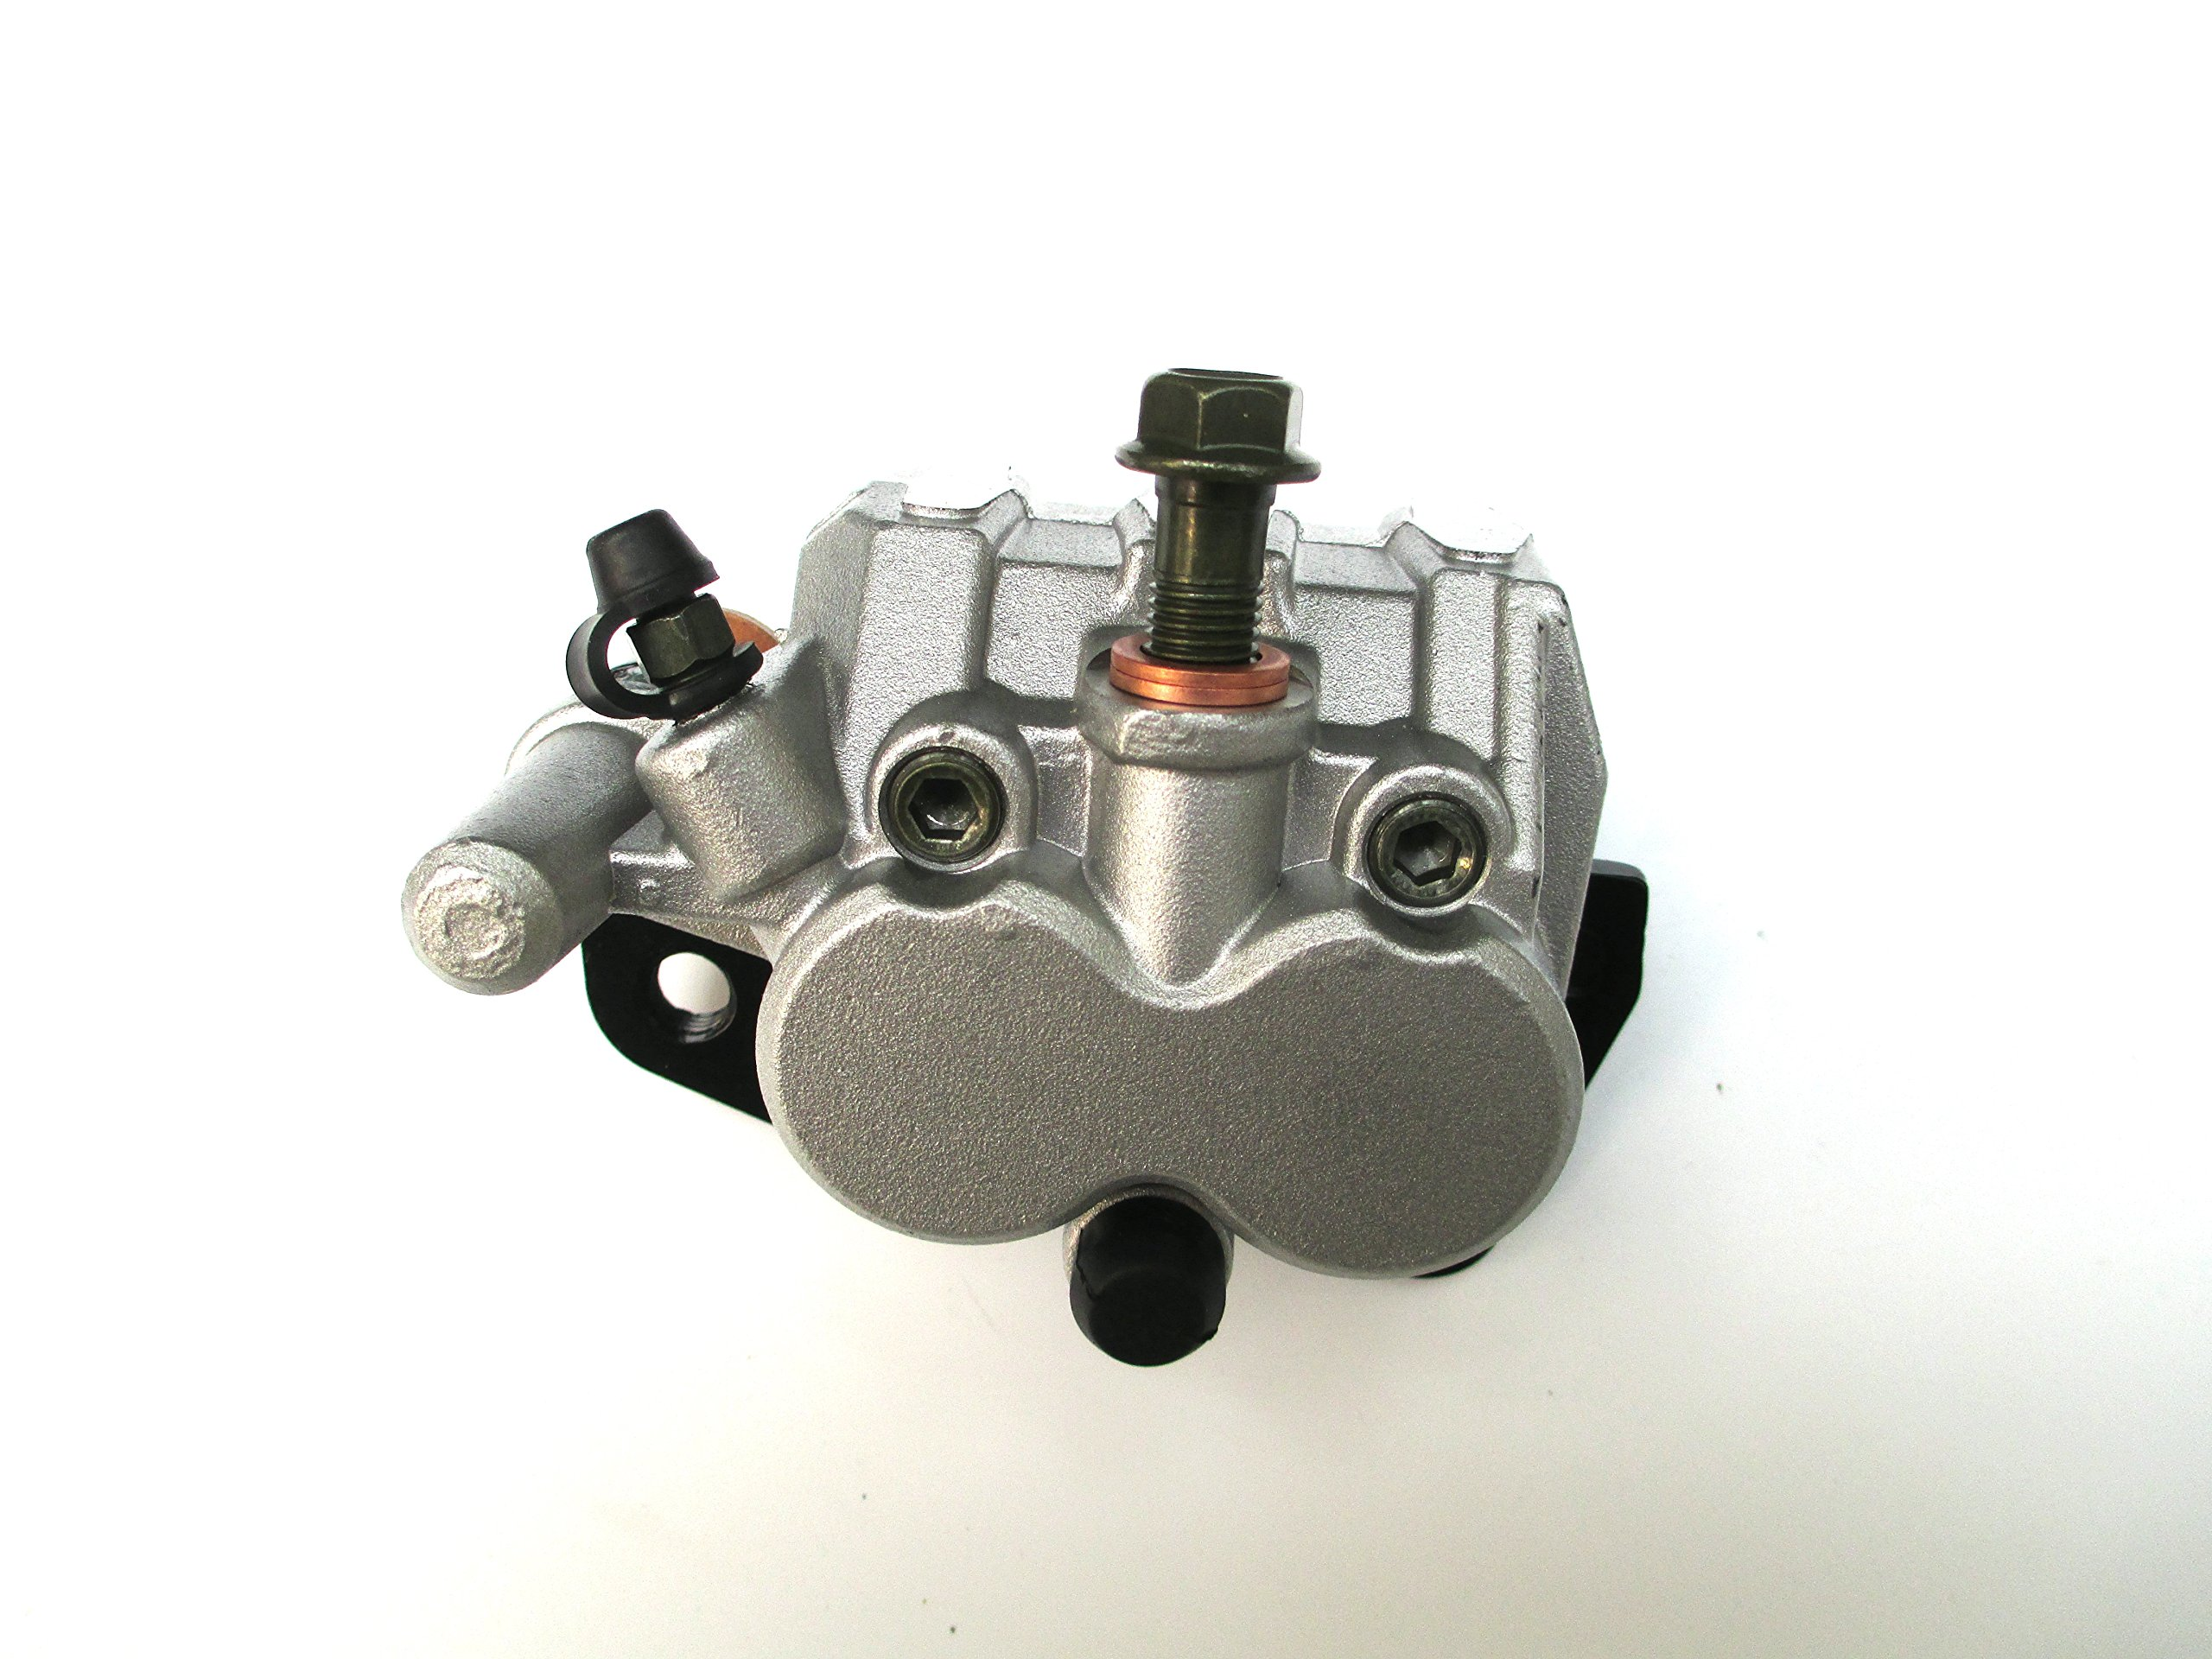 New Left & Right Front Brake Caliper FITS Yamaha Rhino Yamaha Rhino 660 YXR 450 2006 2007 2008 2009 by USonline911 (Image #4)